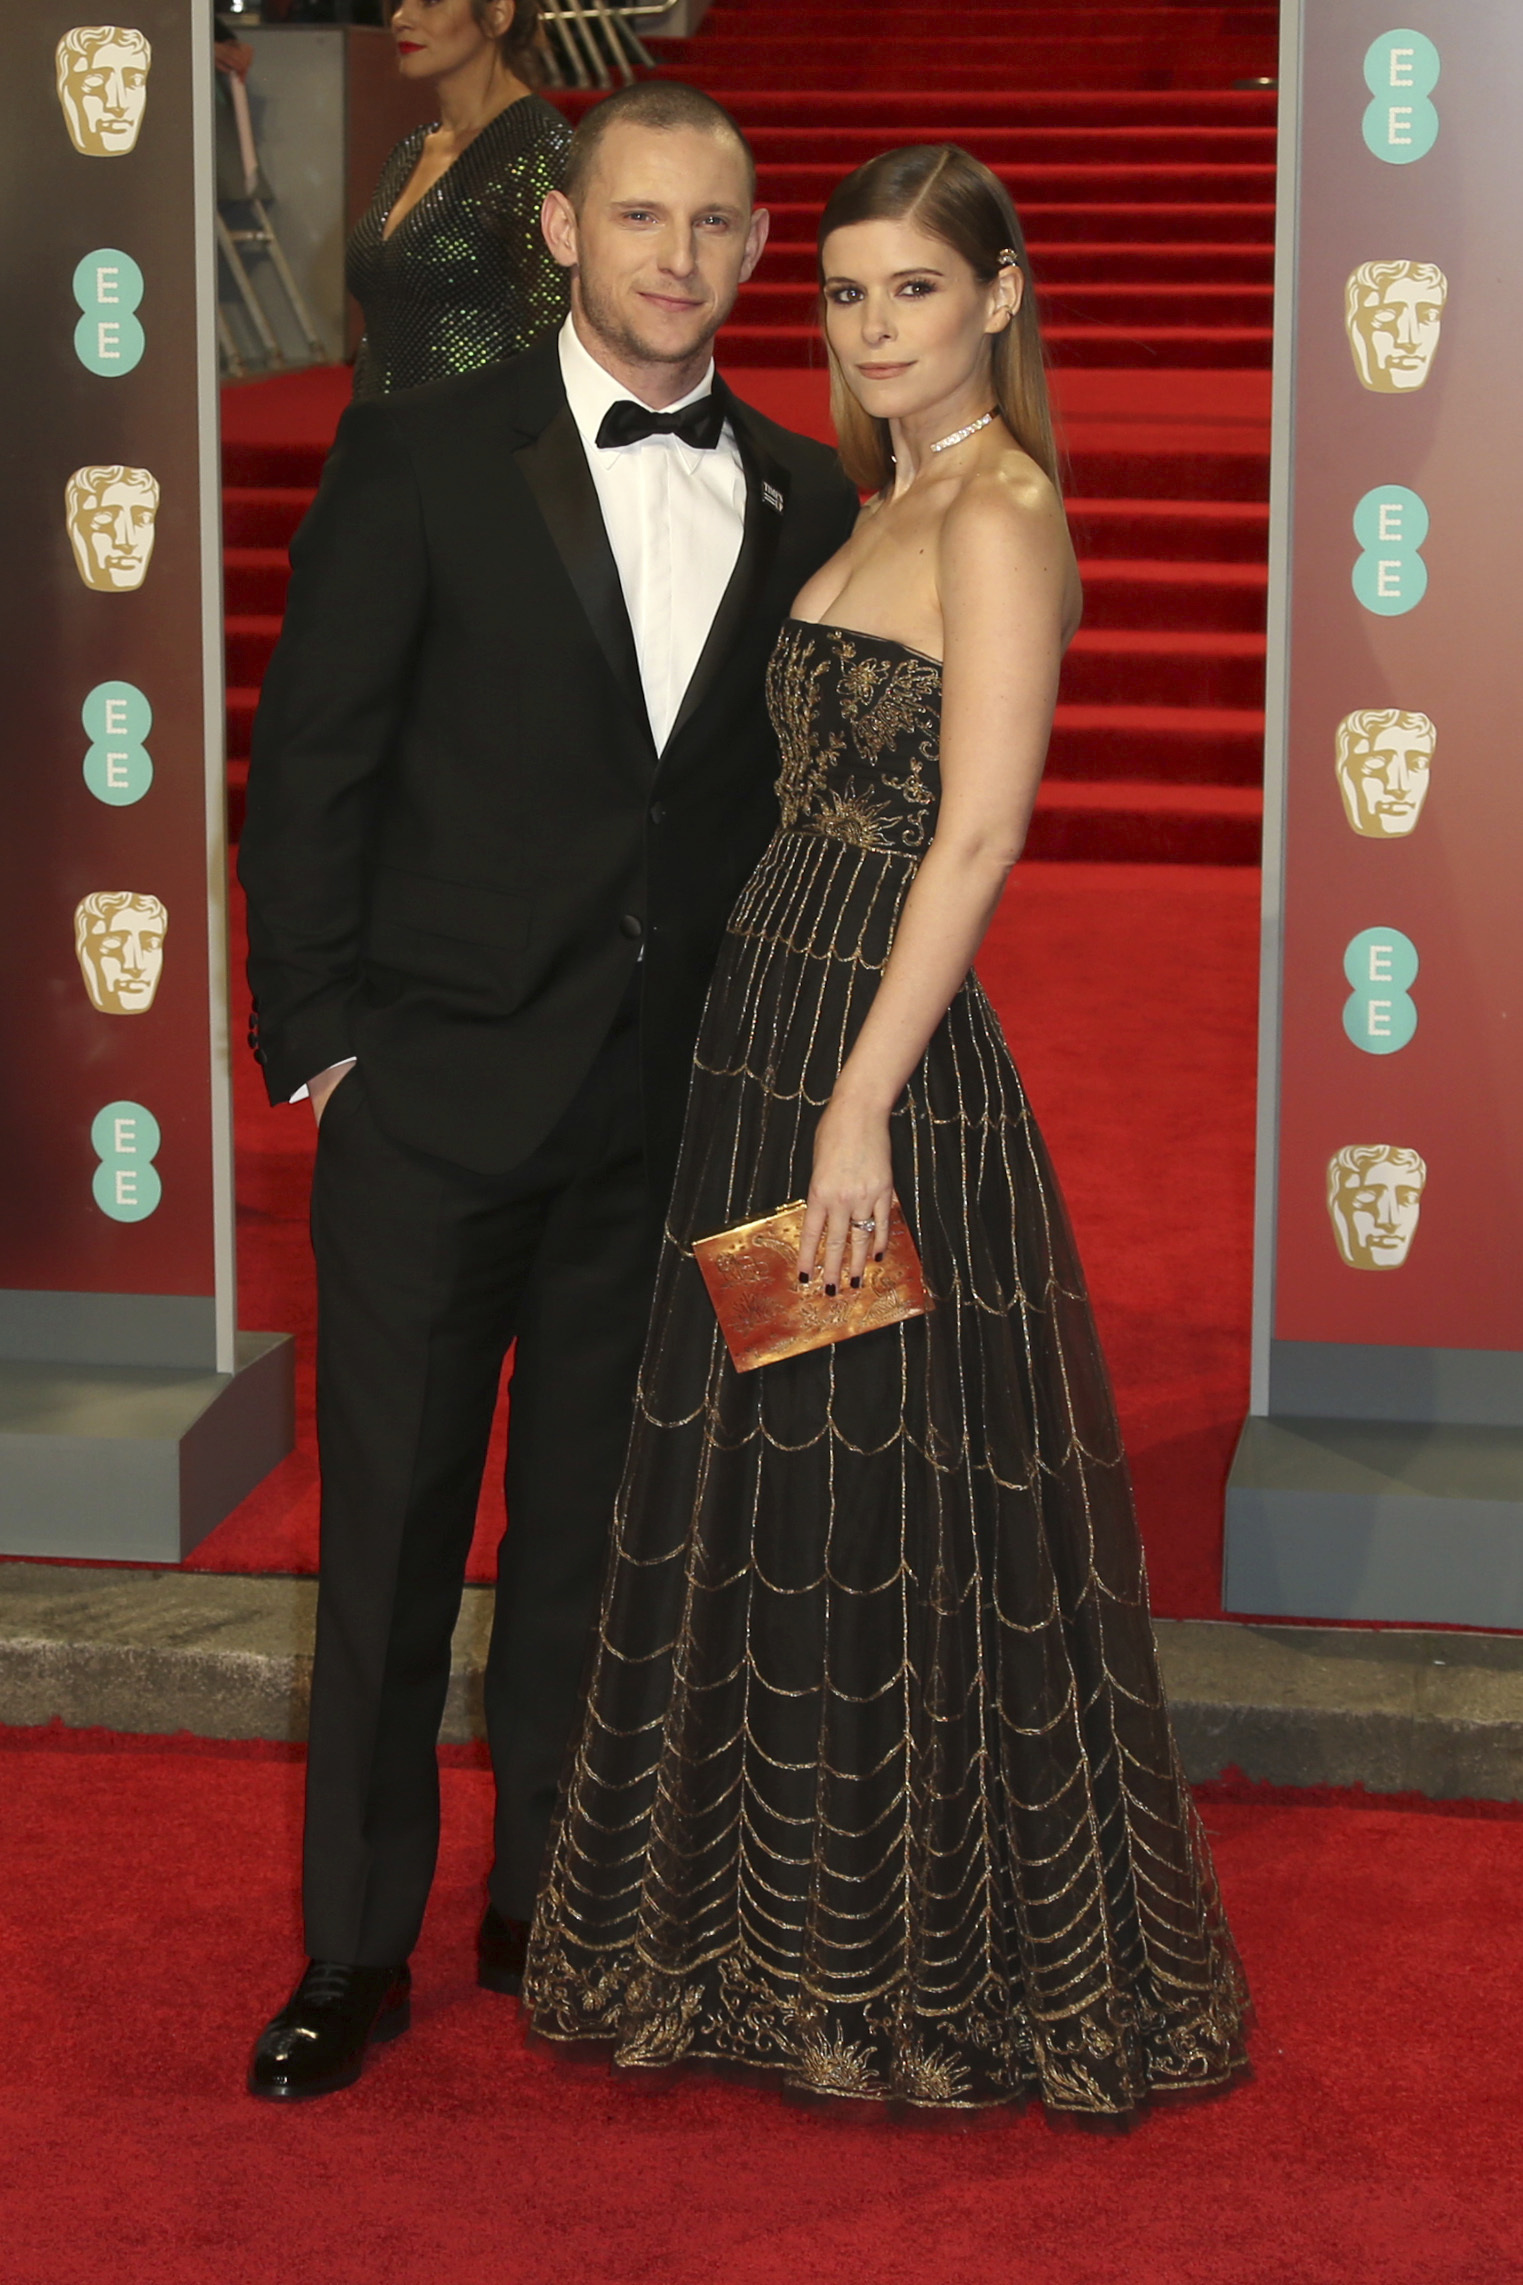 <div class='meta'><div class='origin-logo' data-origin='AP'></div><span class='caption-text' data-credit='Joel C Ryan/Invision/AP'>Actors Jamie Bell and Kate Mara pose for photographers upon arrival at the BAFTA 2018 Awards in London, Sunday, Feb. 18, 2018.</span></div>